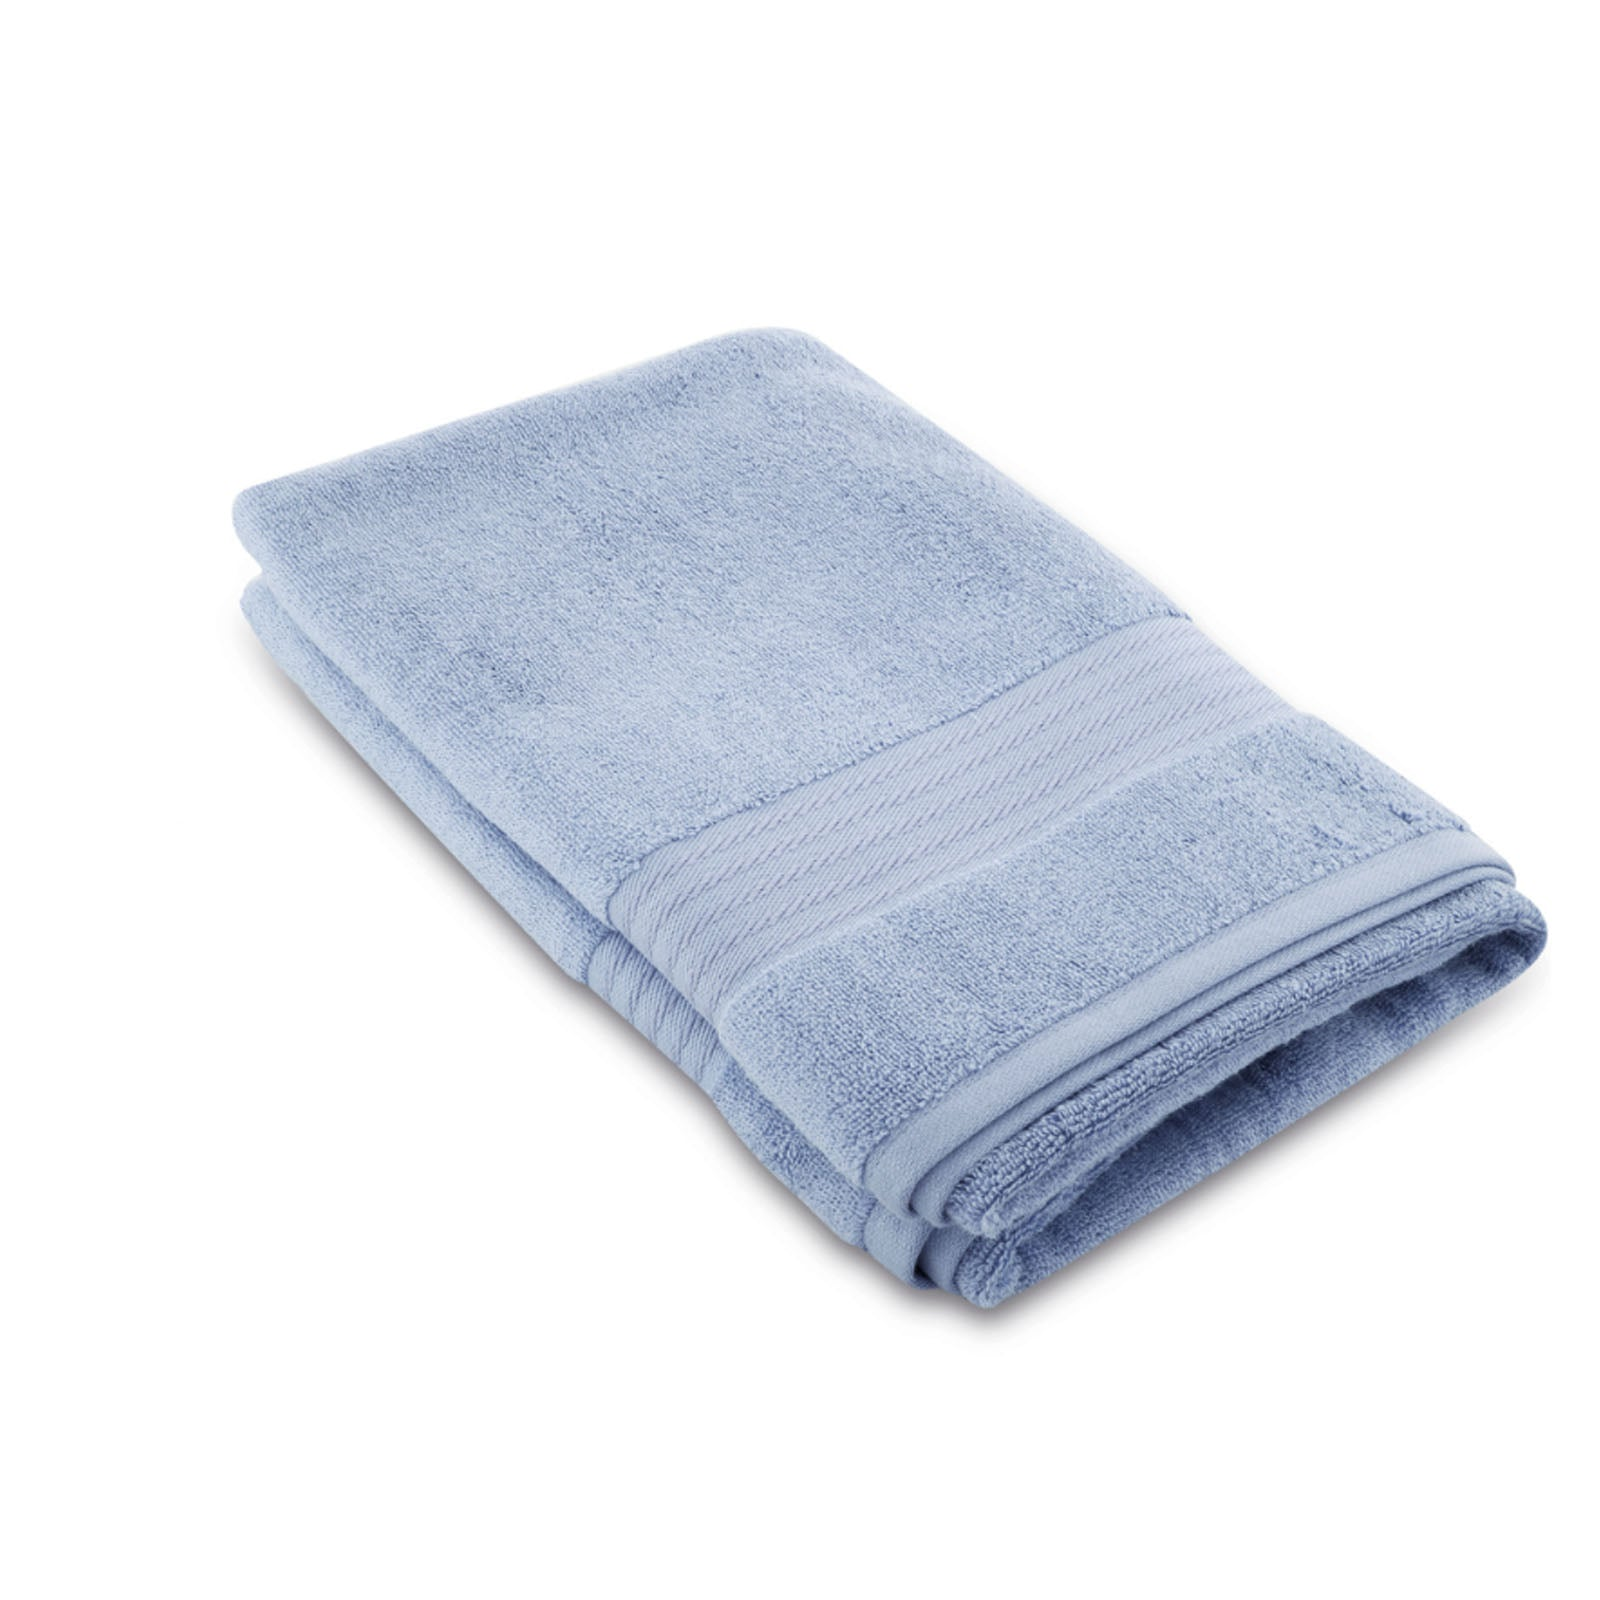 50x90 PURE SOFT towel   200.13.01.0141